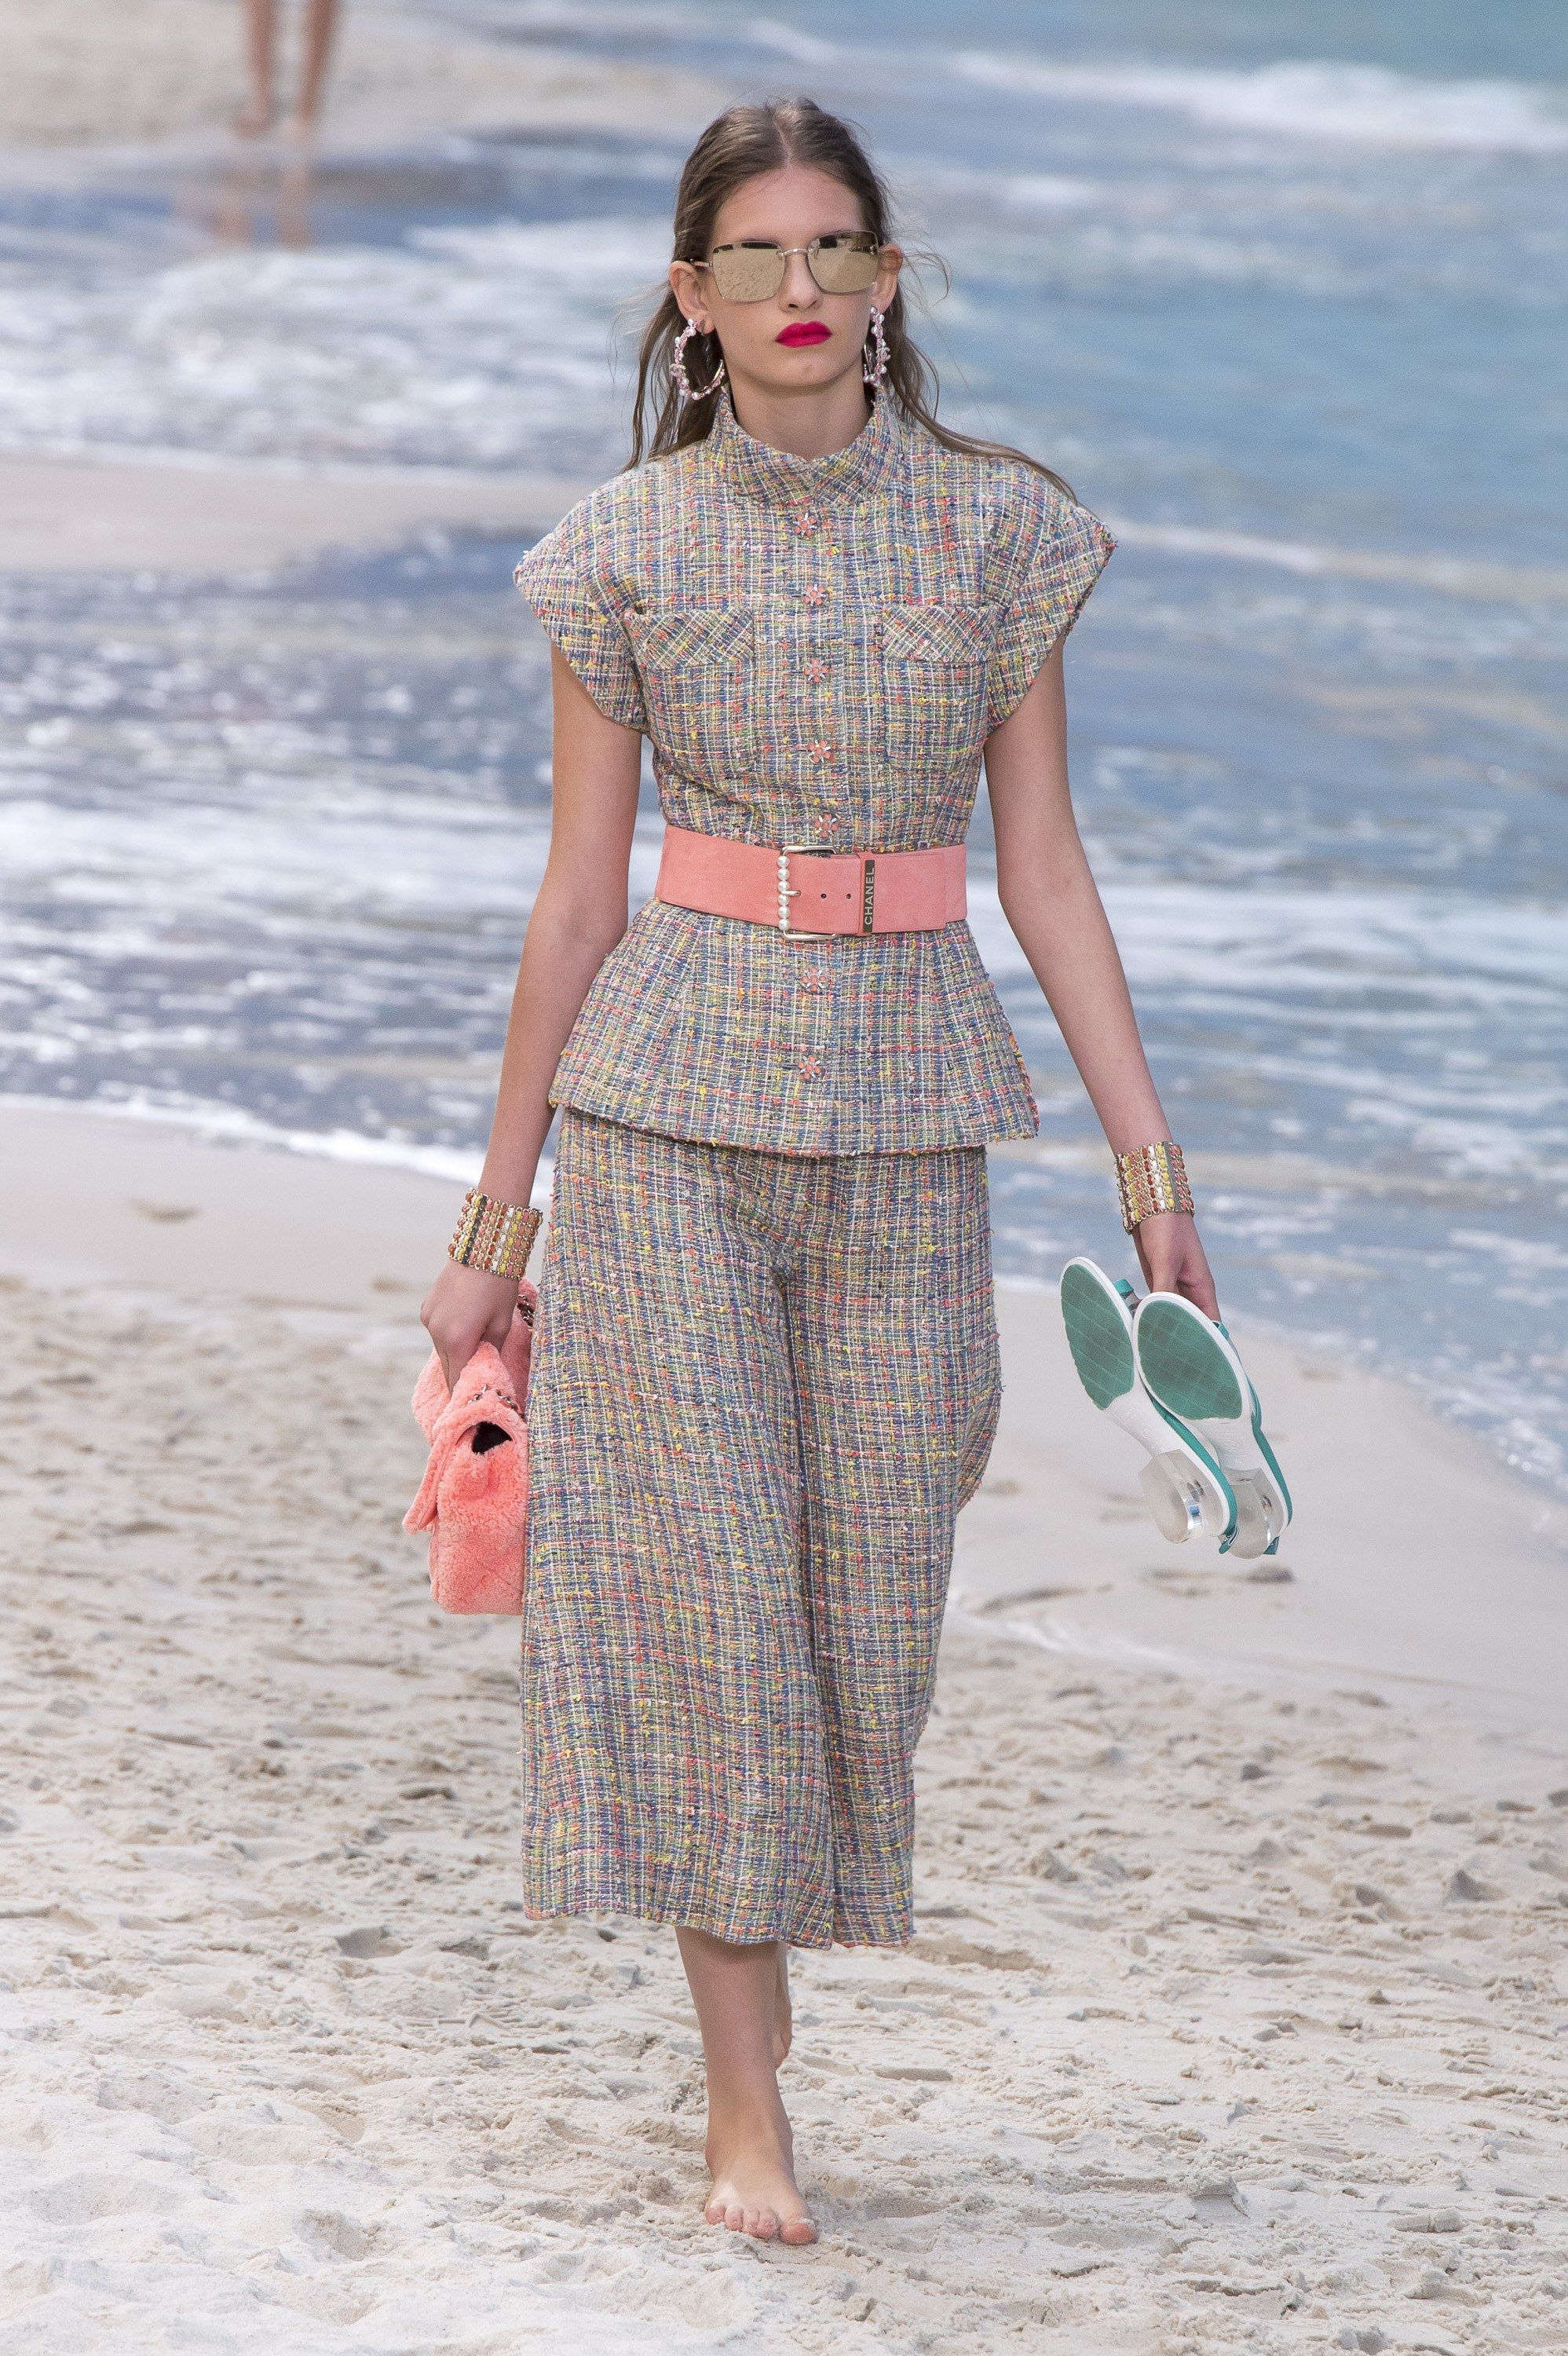 Chanel Spring 2019 Ready-to-Wear Collection - Vogue  clothes   beautifulclothes  fashion  apparel  fashiontrends  style  stylewatch   fashioninspiration ... 407b96729ca9